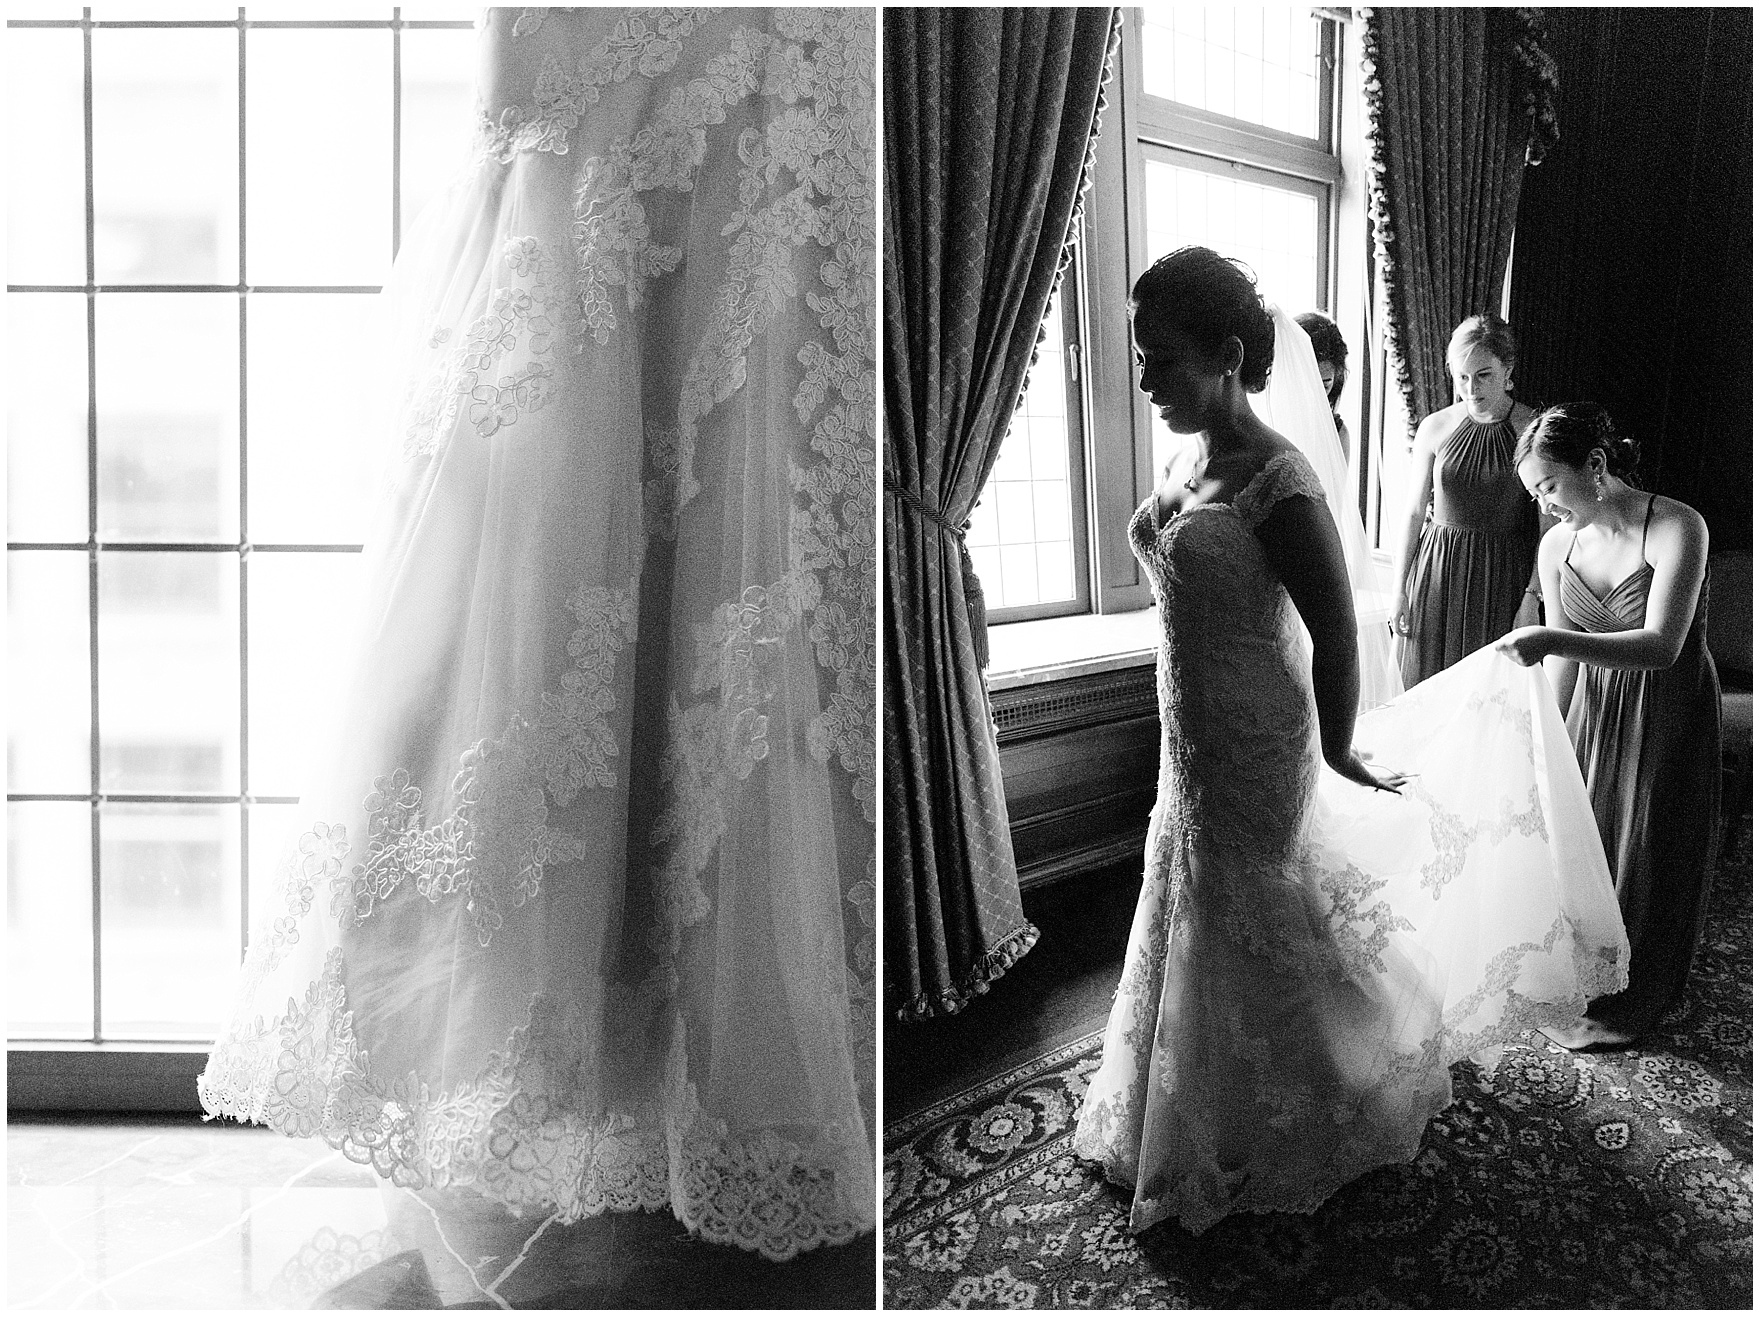 The bride and bridesmaids get ready for a University Club of Chicago wedding.